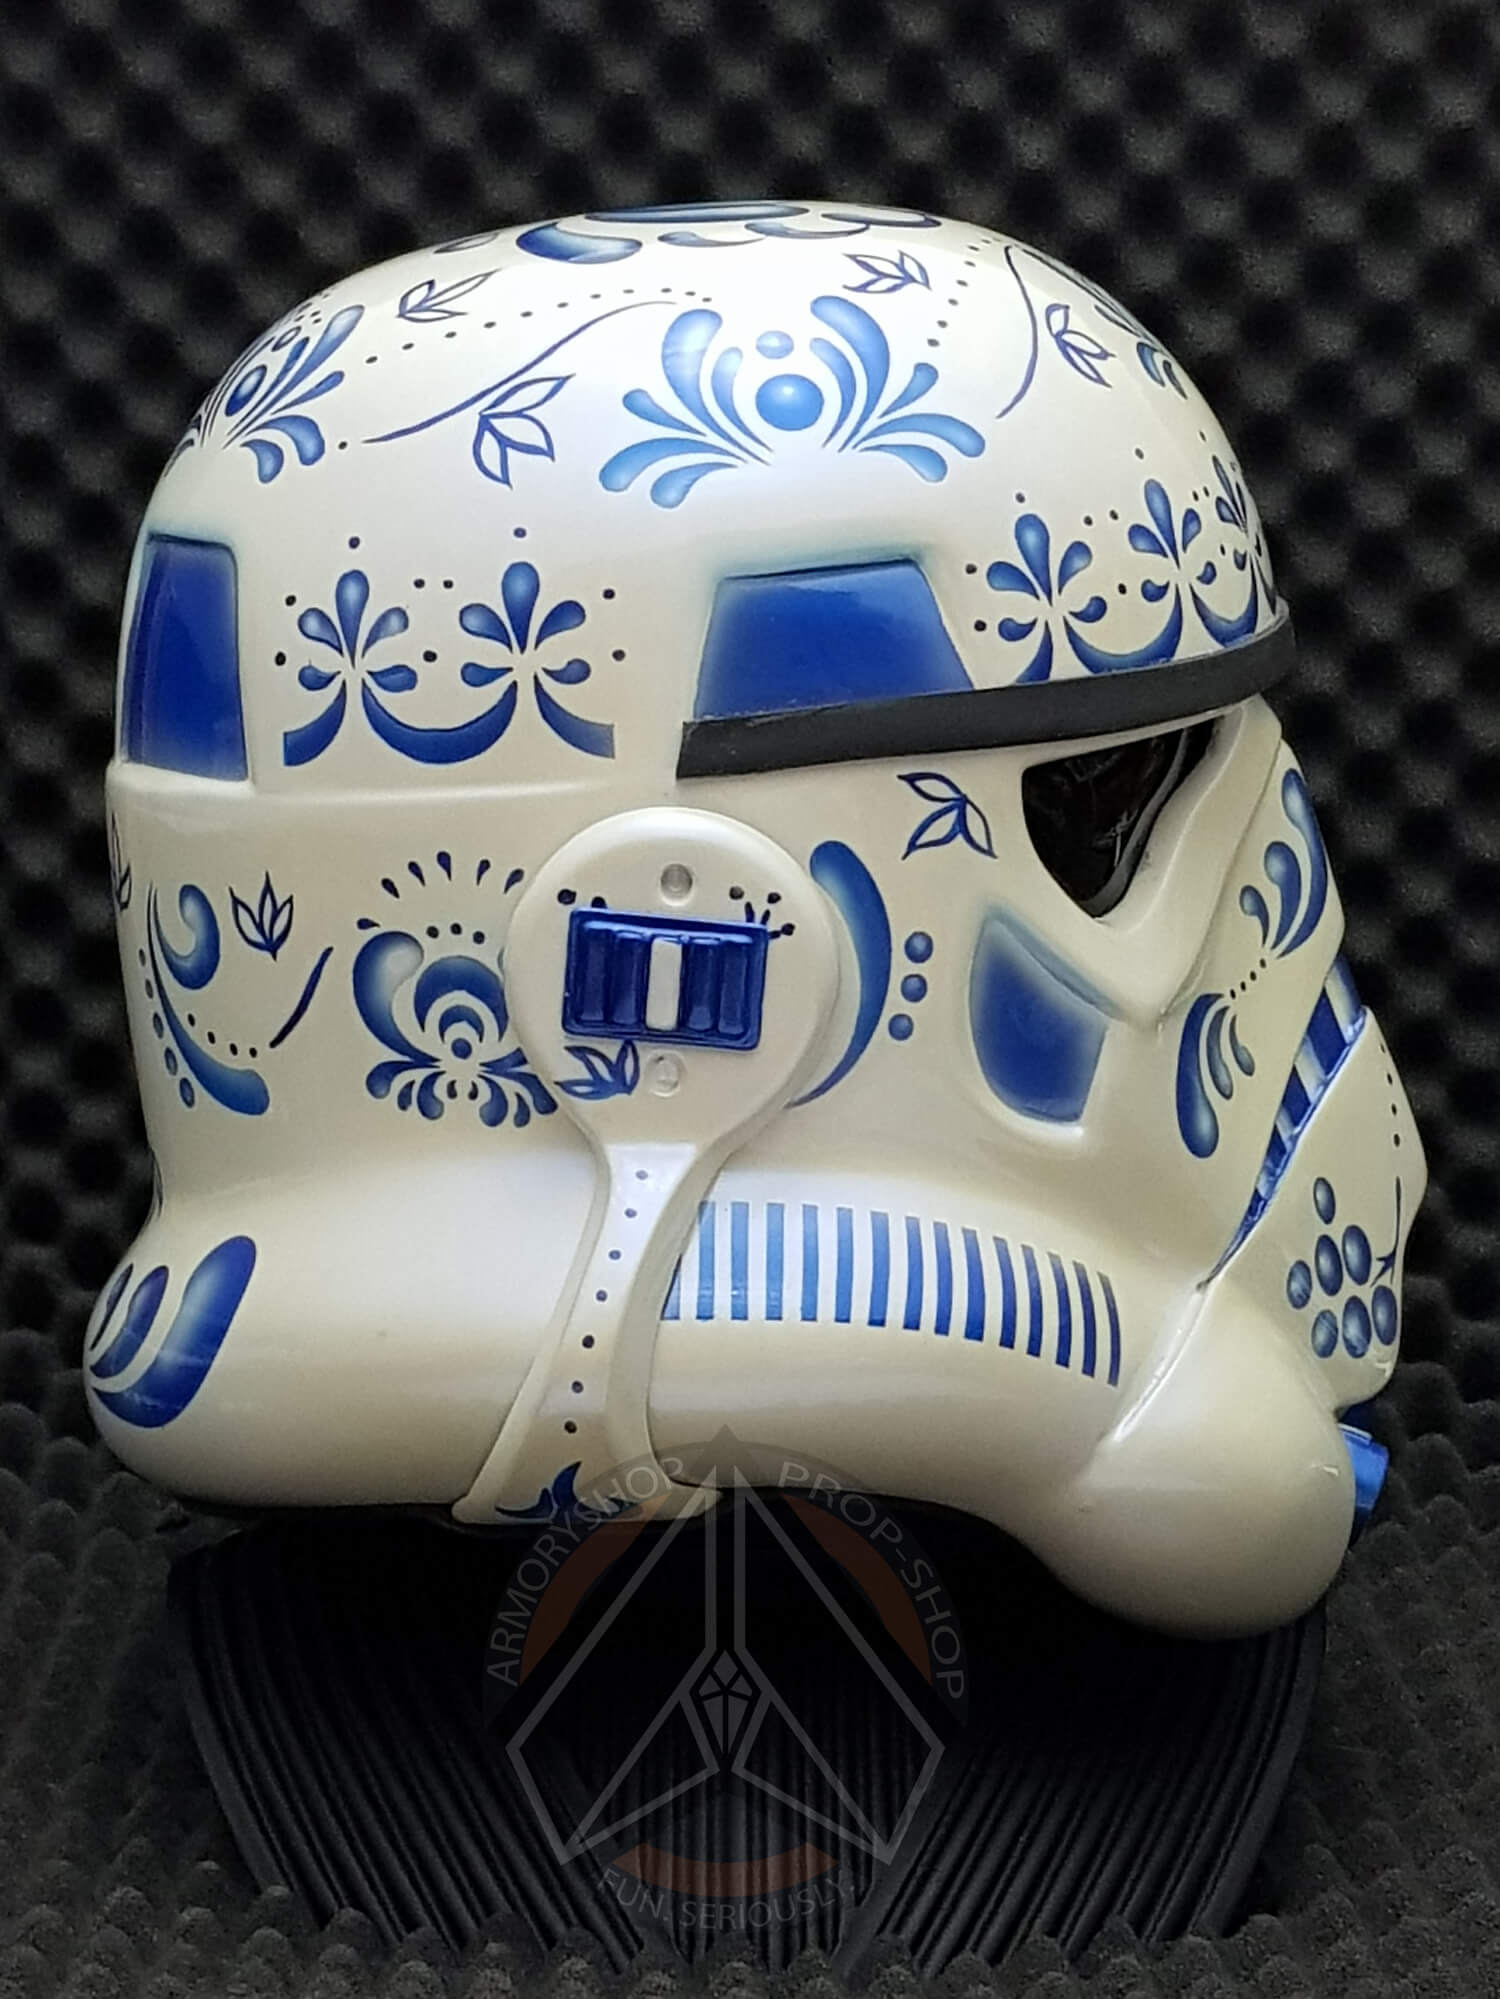 """GZHEL [Гжель]"" - Stormtrooper Helmet (Art Project)"